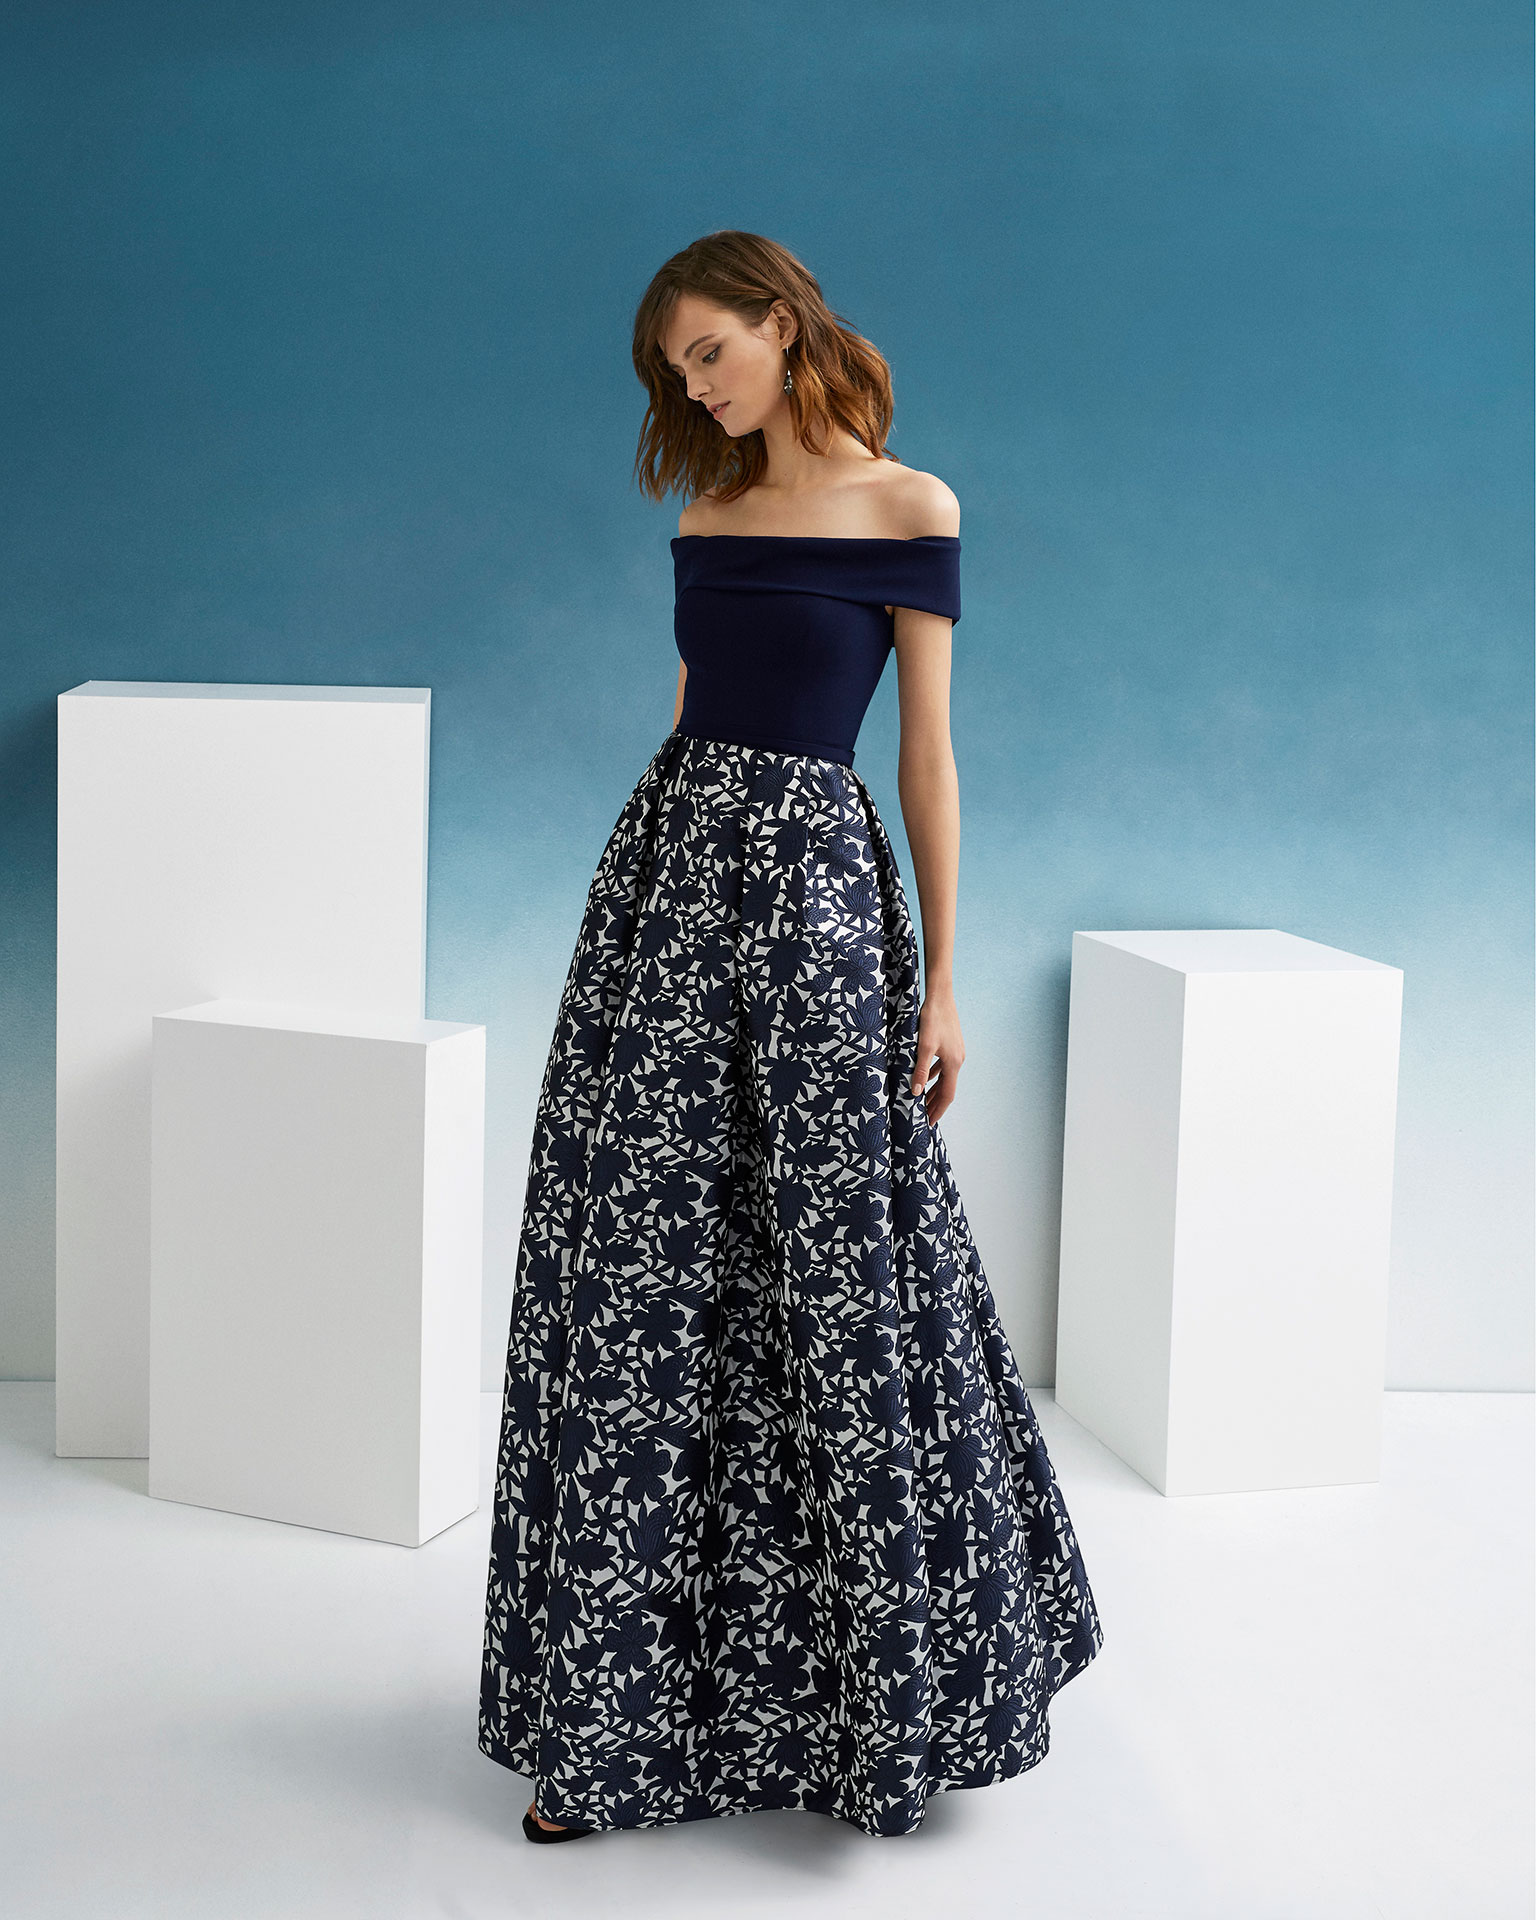 Classic cocktail dress in brocade and crepe. Off-the-shoulder neckline. 2019 FIESTA AIRE BARCELONA Collection.